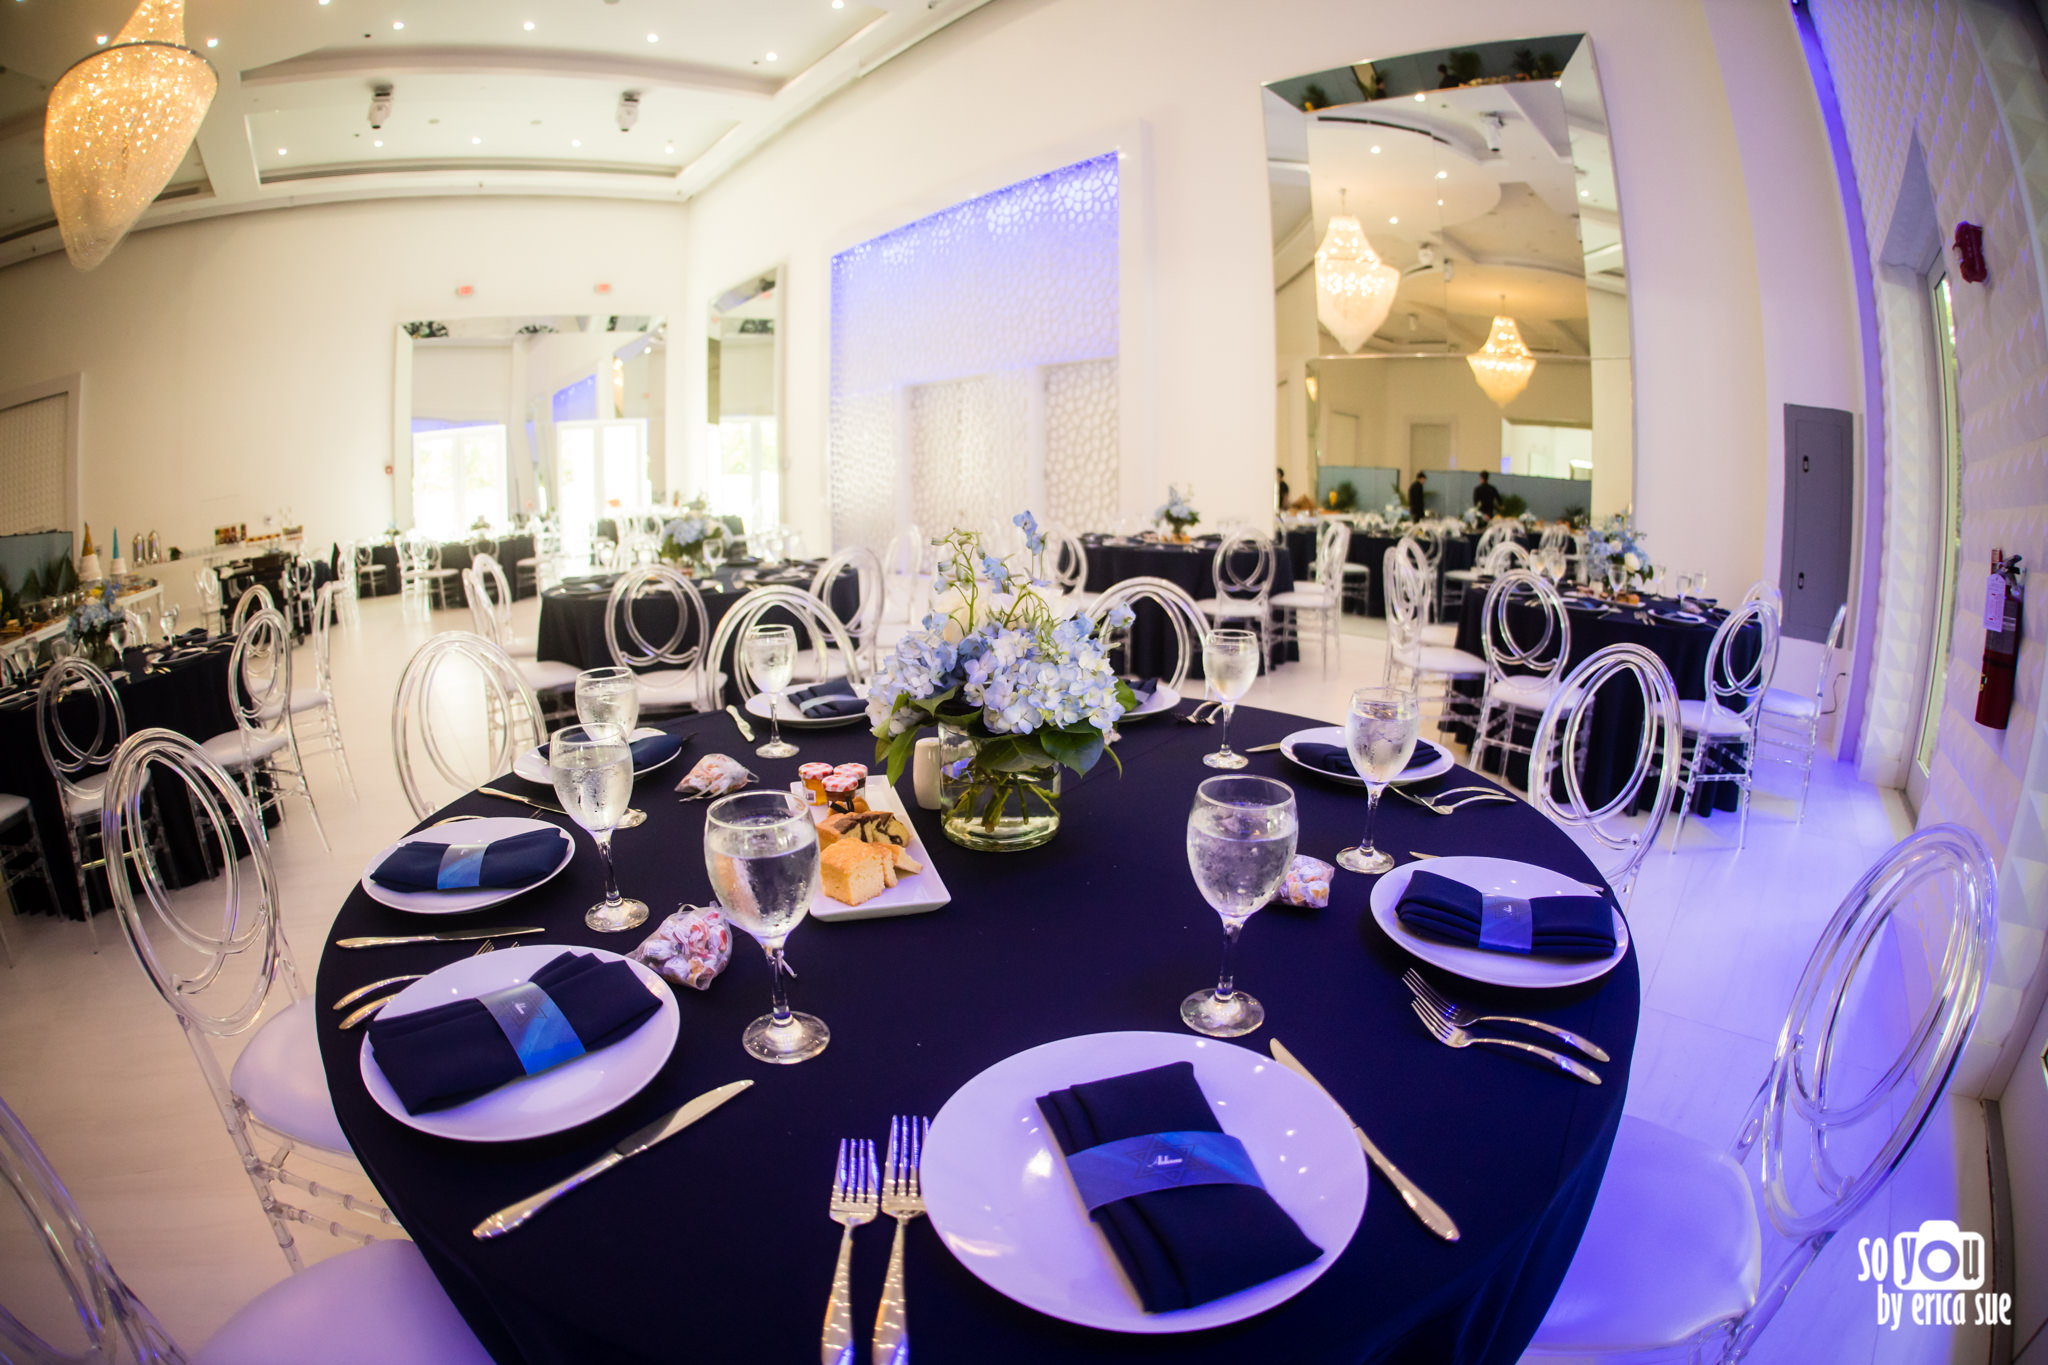 so-you-by-erica-sue-mitzvah-bnai-sephardim-hollywood-one-event-place-kosher-caterer-0557.jpg